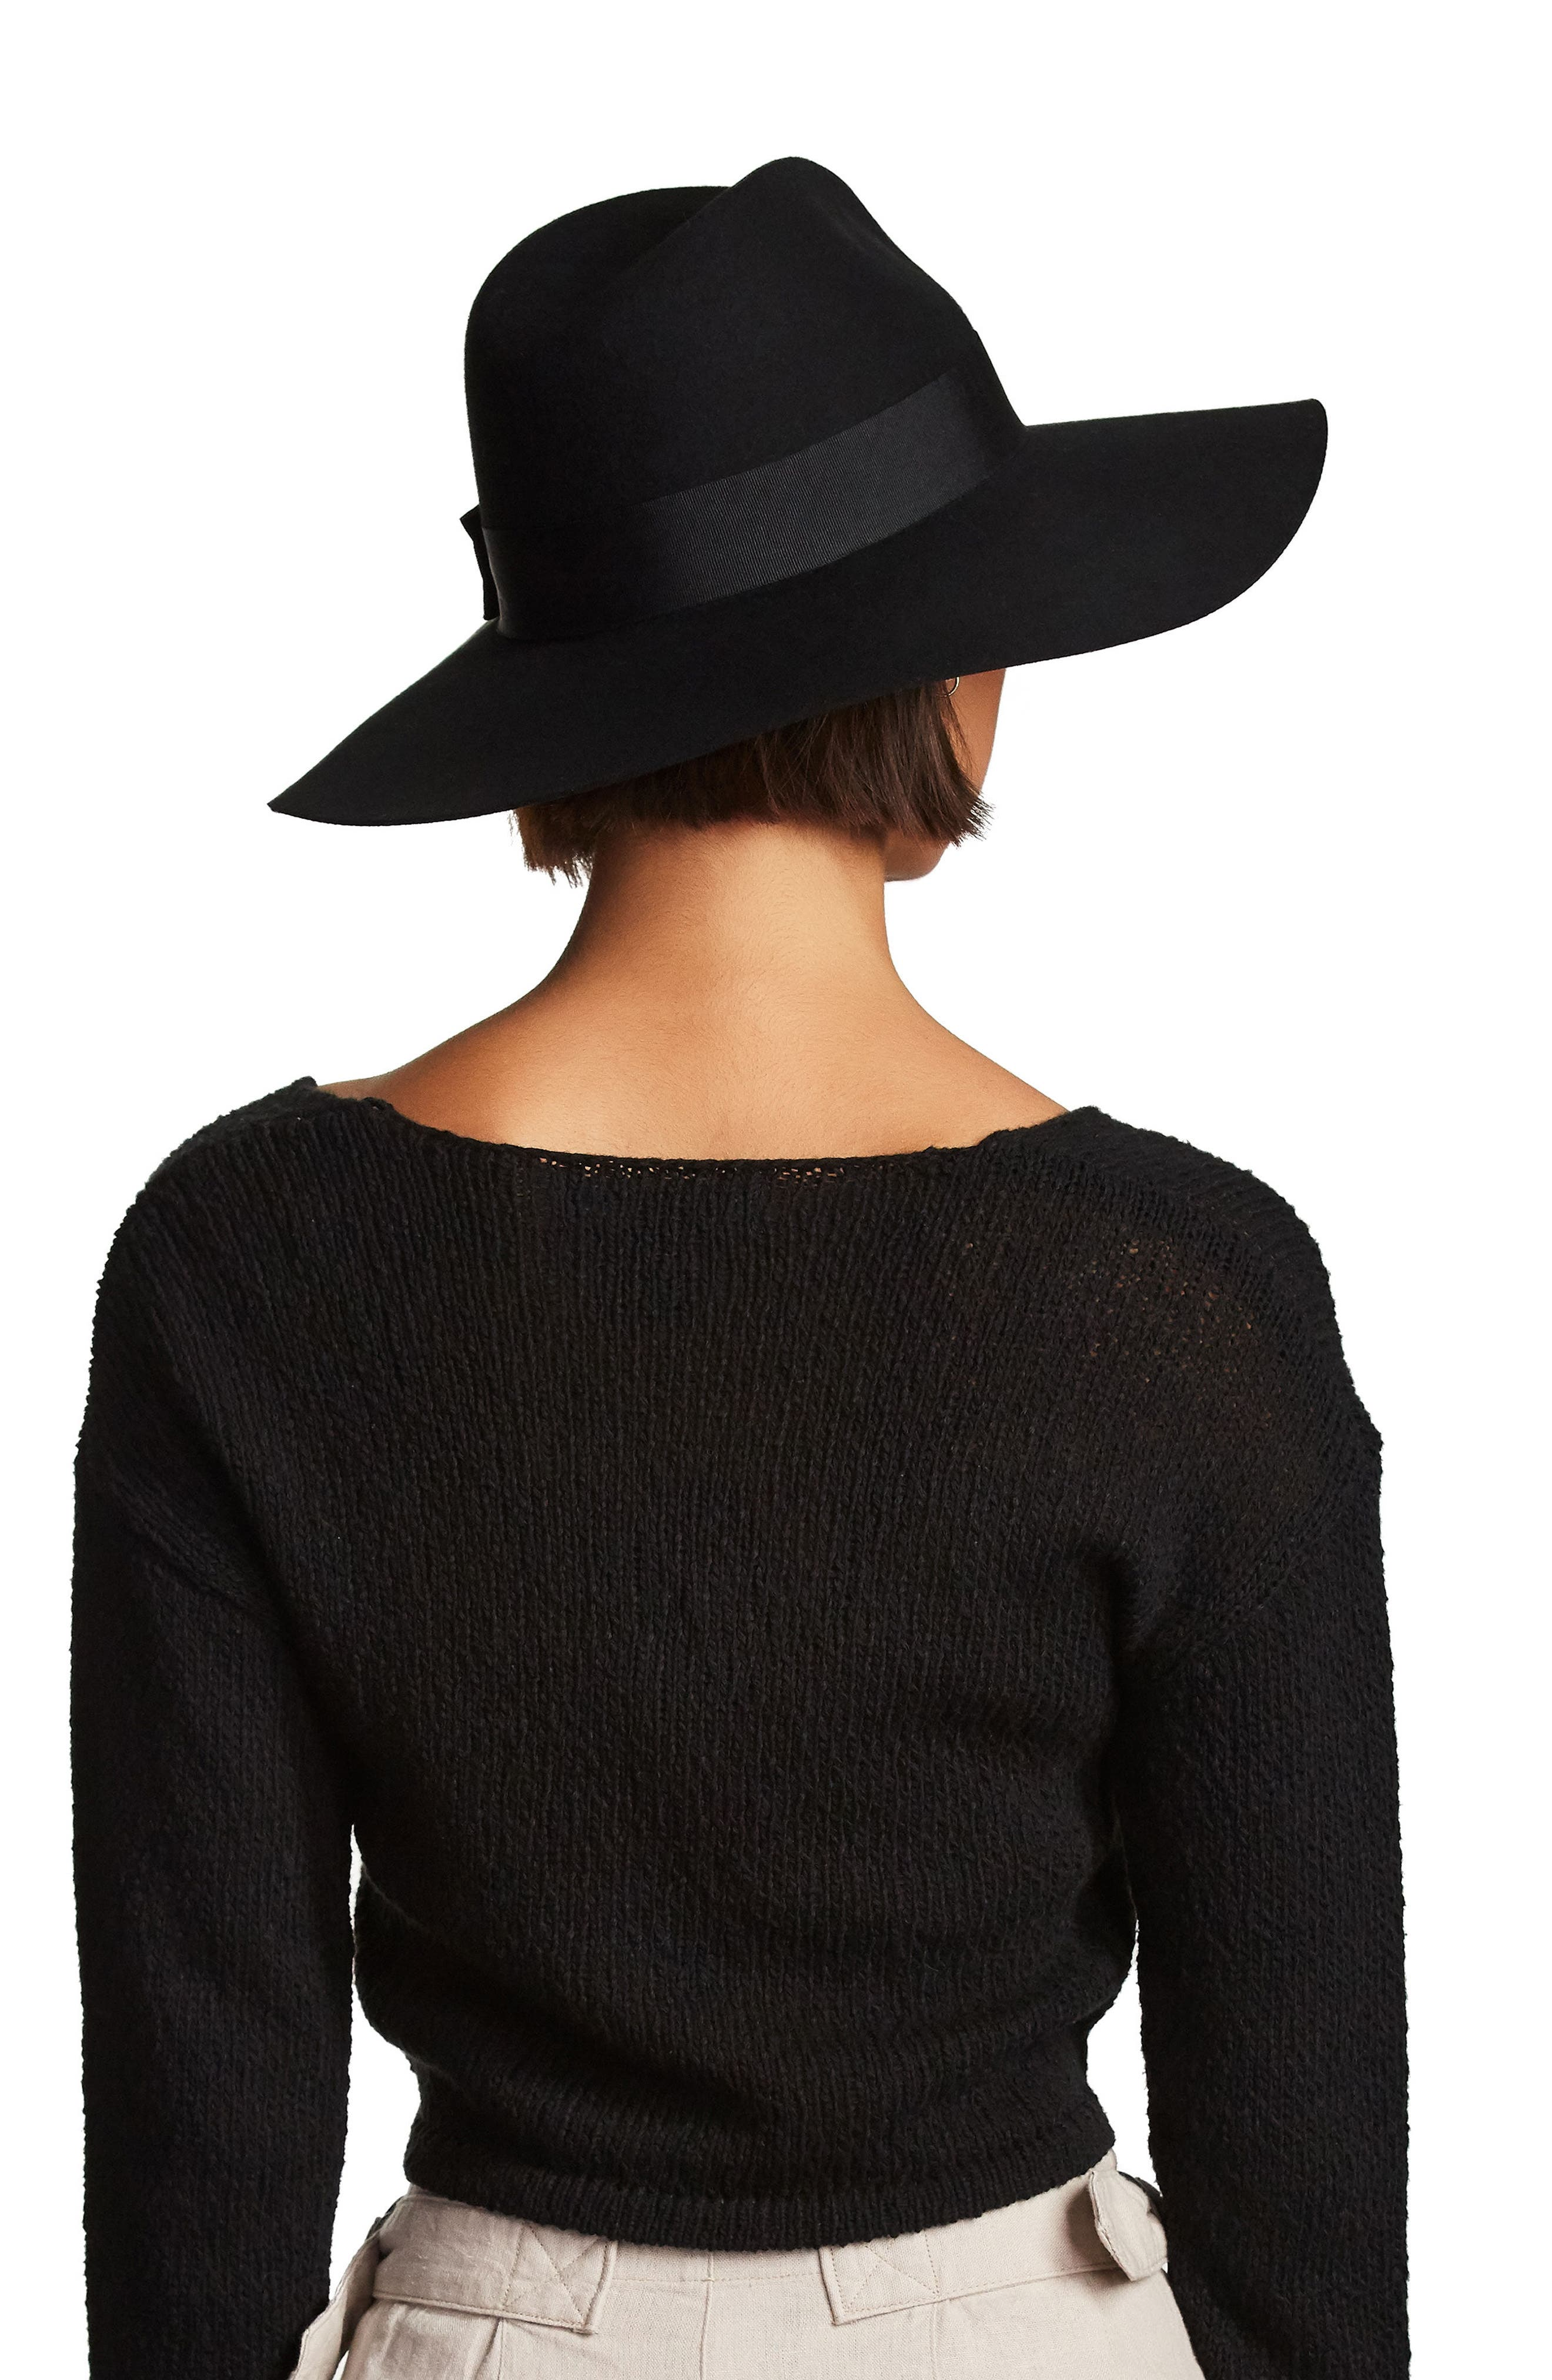 'Piper' Floppy Wool Hat,                             Alternate thumbnail 4, color,